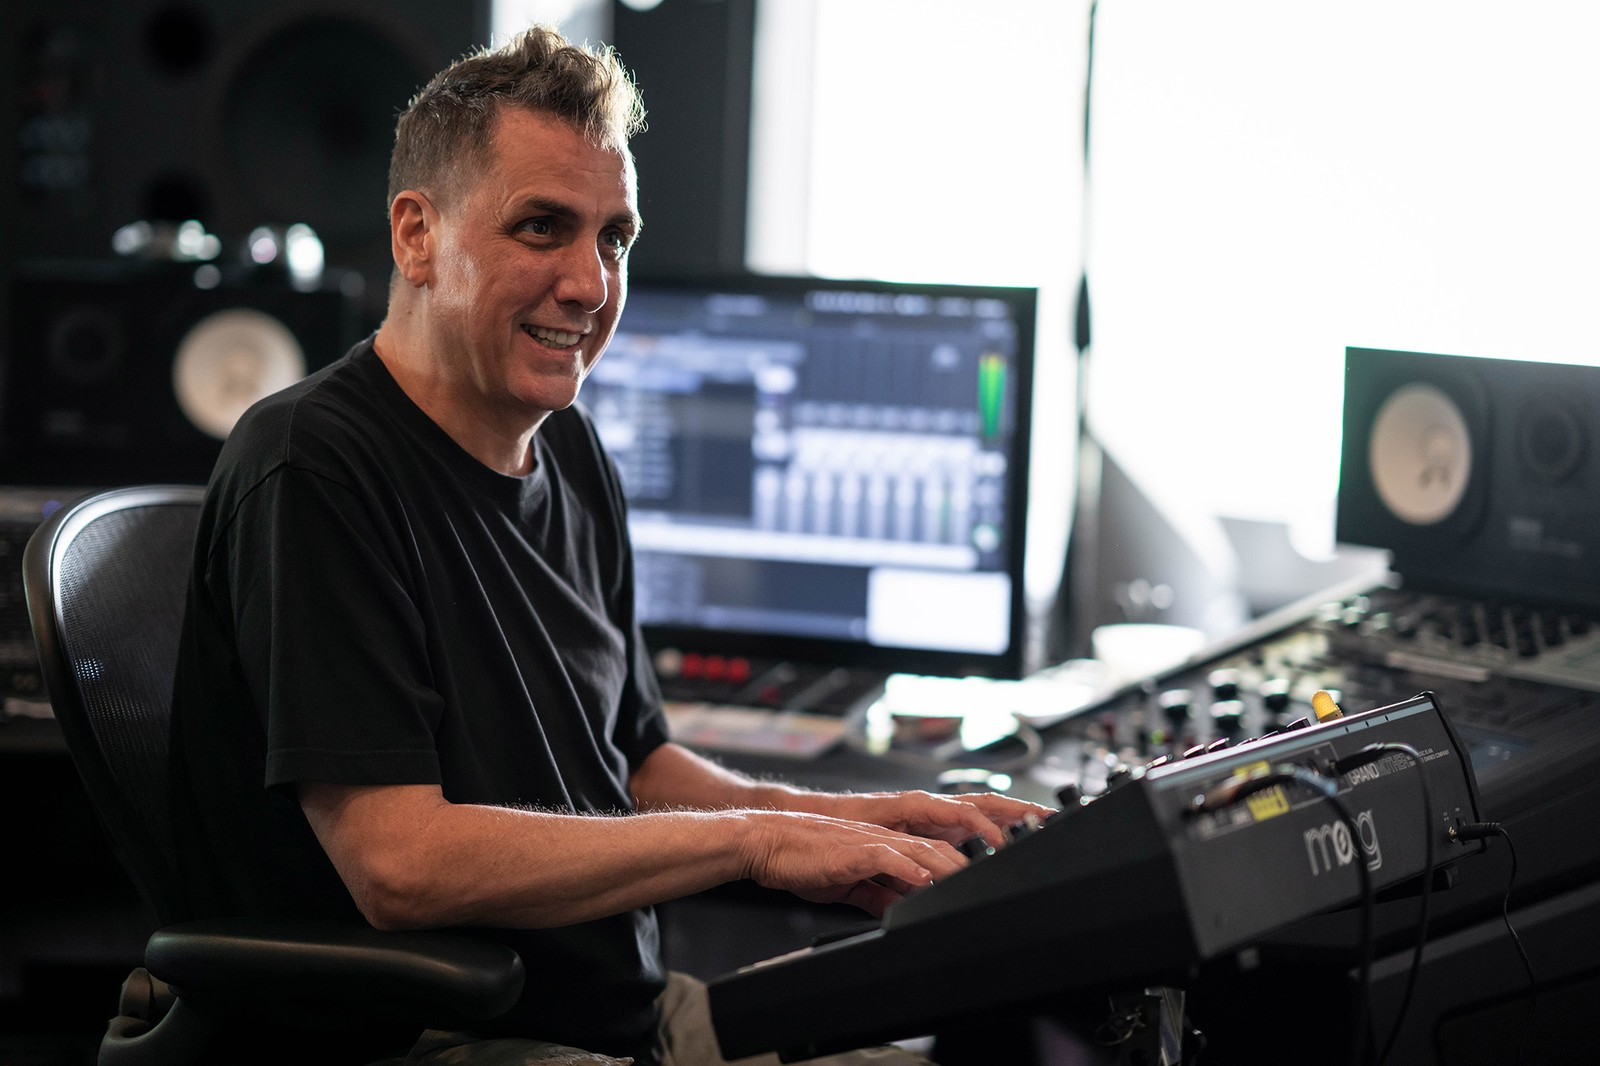 Mike Dean Debut Album 4:20 Interview Producer Kanye West Travis Scott Scarface Geto Boys GOOD Music Devil In A New Dress My Beautiful Dark Twisted Fantasy HYPEBEAST 420 Instagram Live Takeover Beat Battle